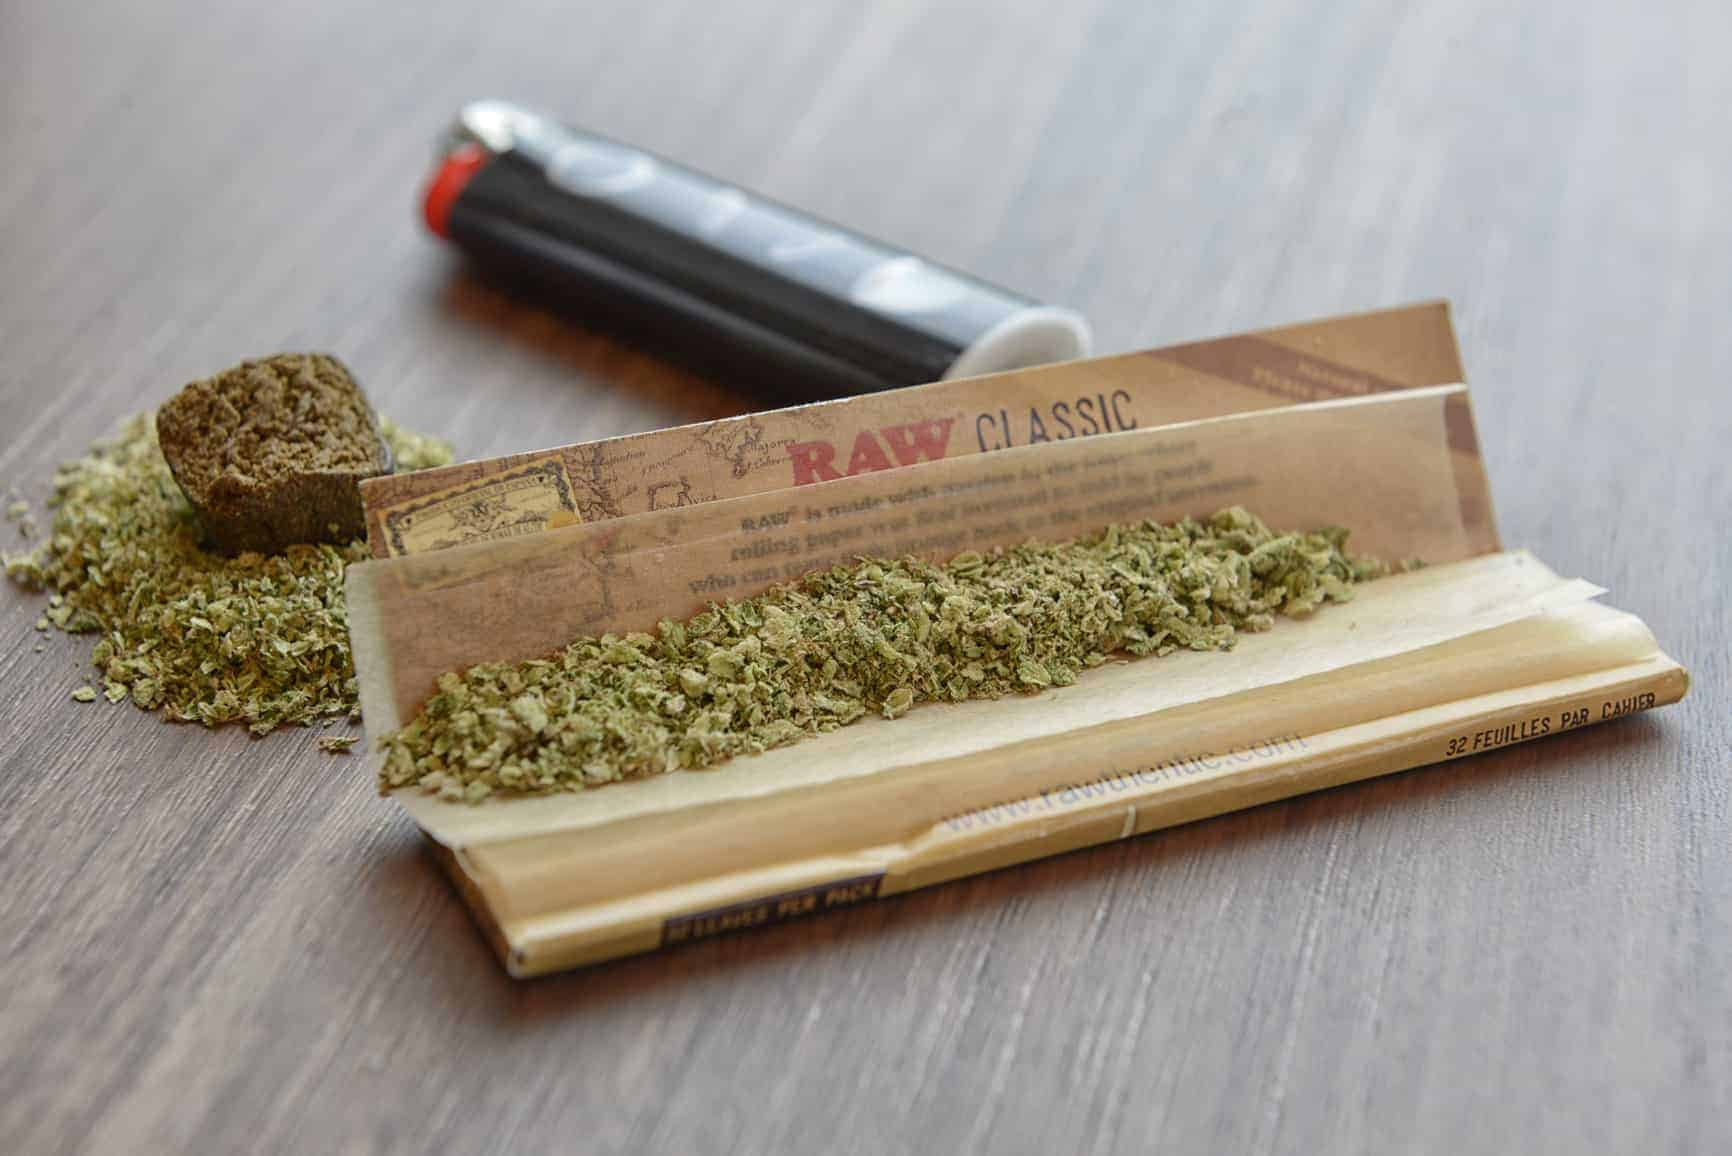 Amsterdam Weed and Hash ready to roll in Raw Classic Paper